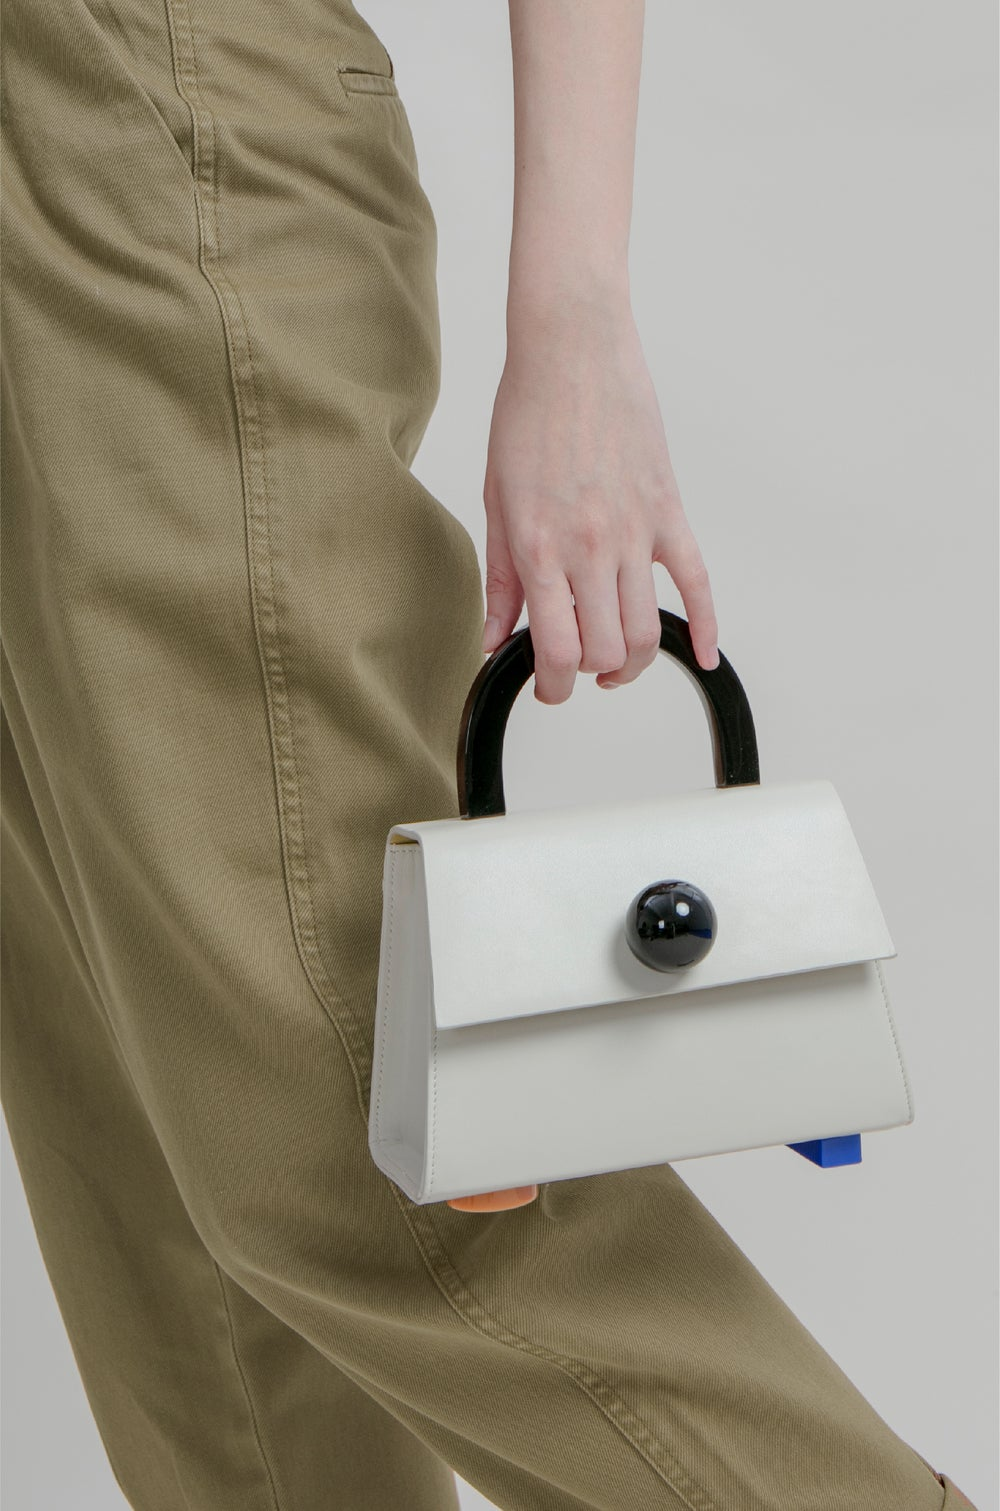 Diva satchel bag • Beige with strap - Limited quantities